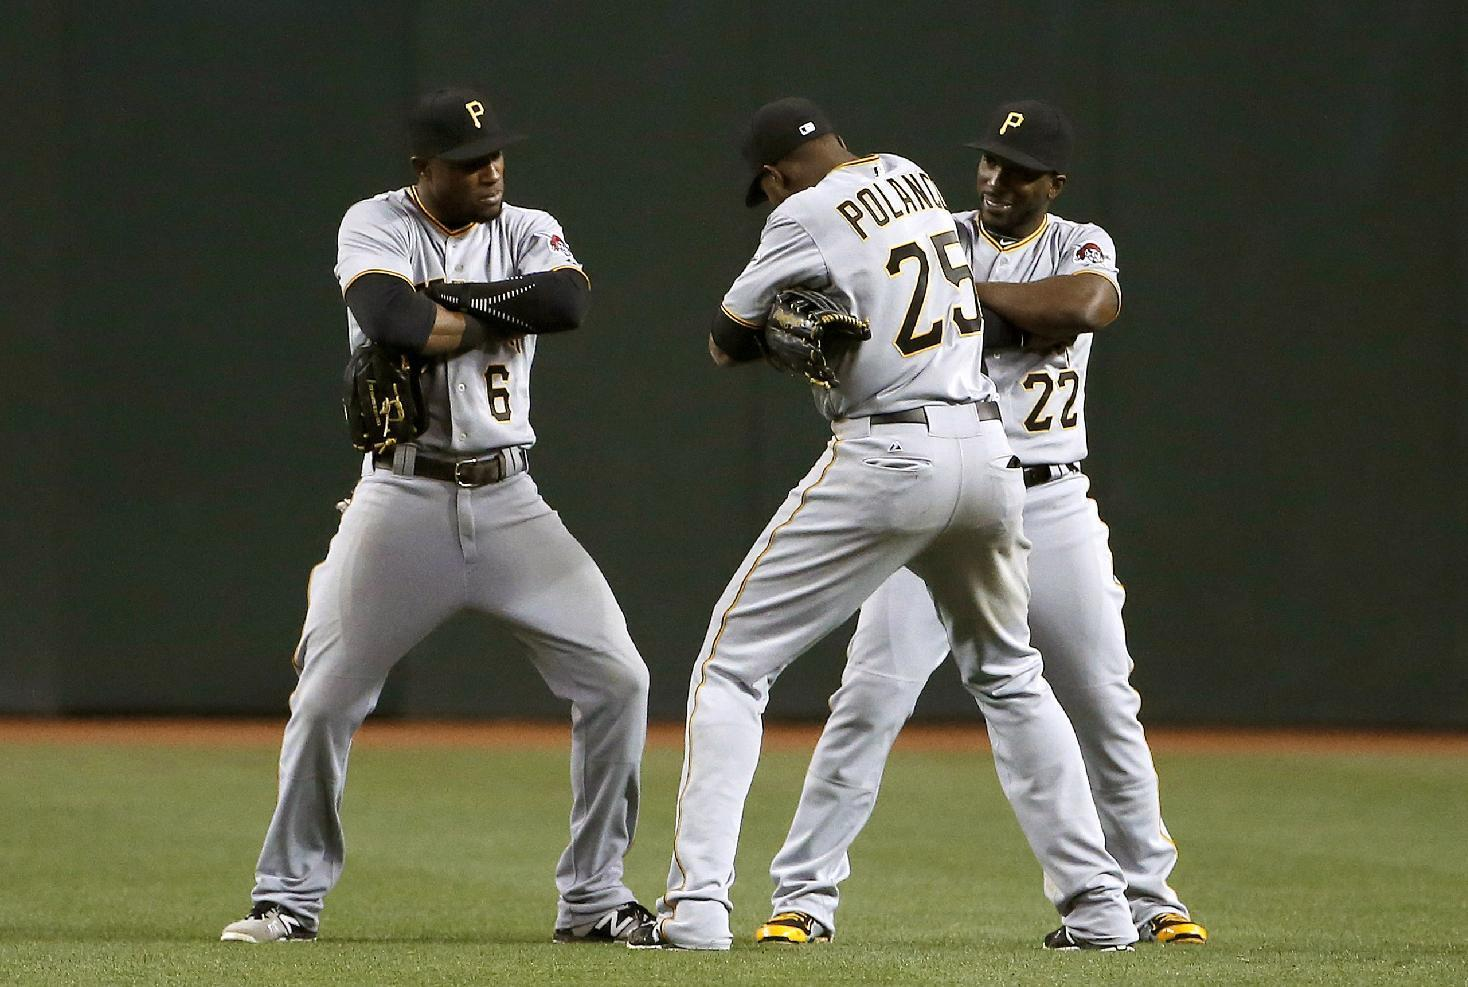 Marte's single in 9th lifts Pirates over Diamondbacks 2-1